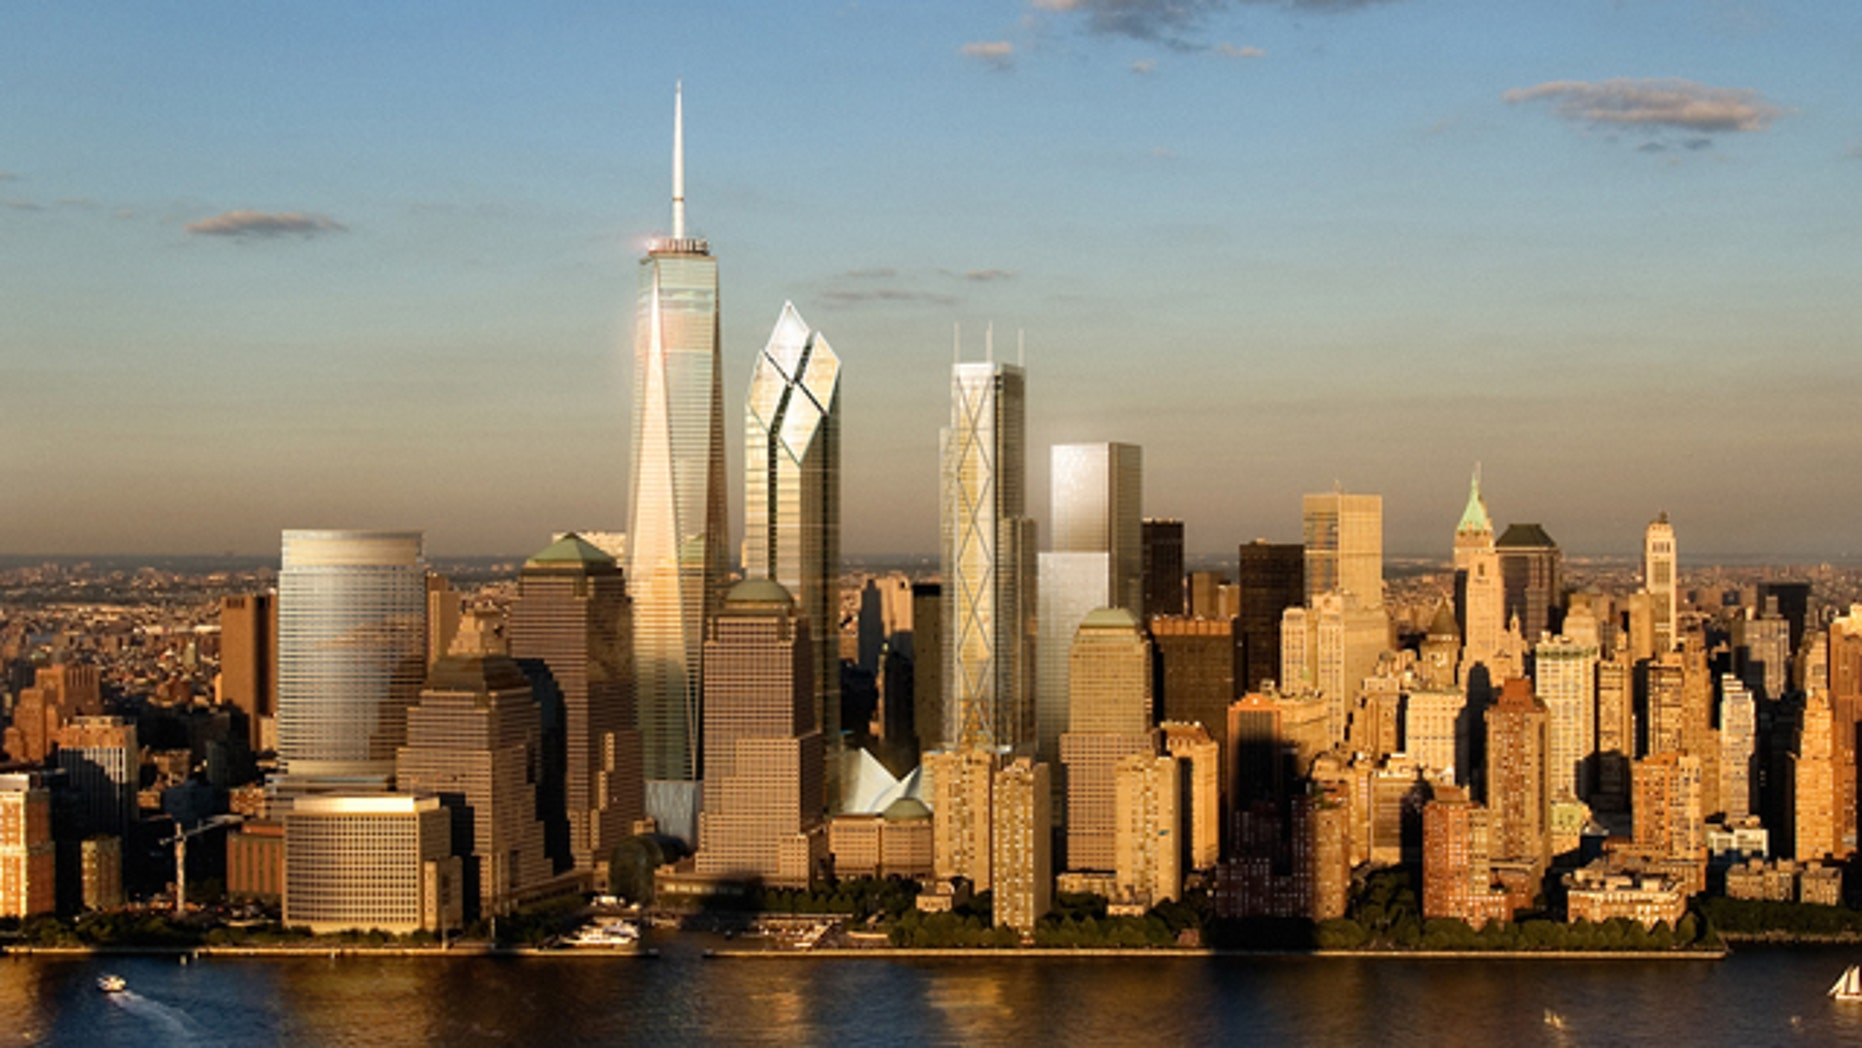 An artist's rendering of the new World Trade Center, as seen from the Hudson River.